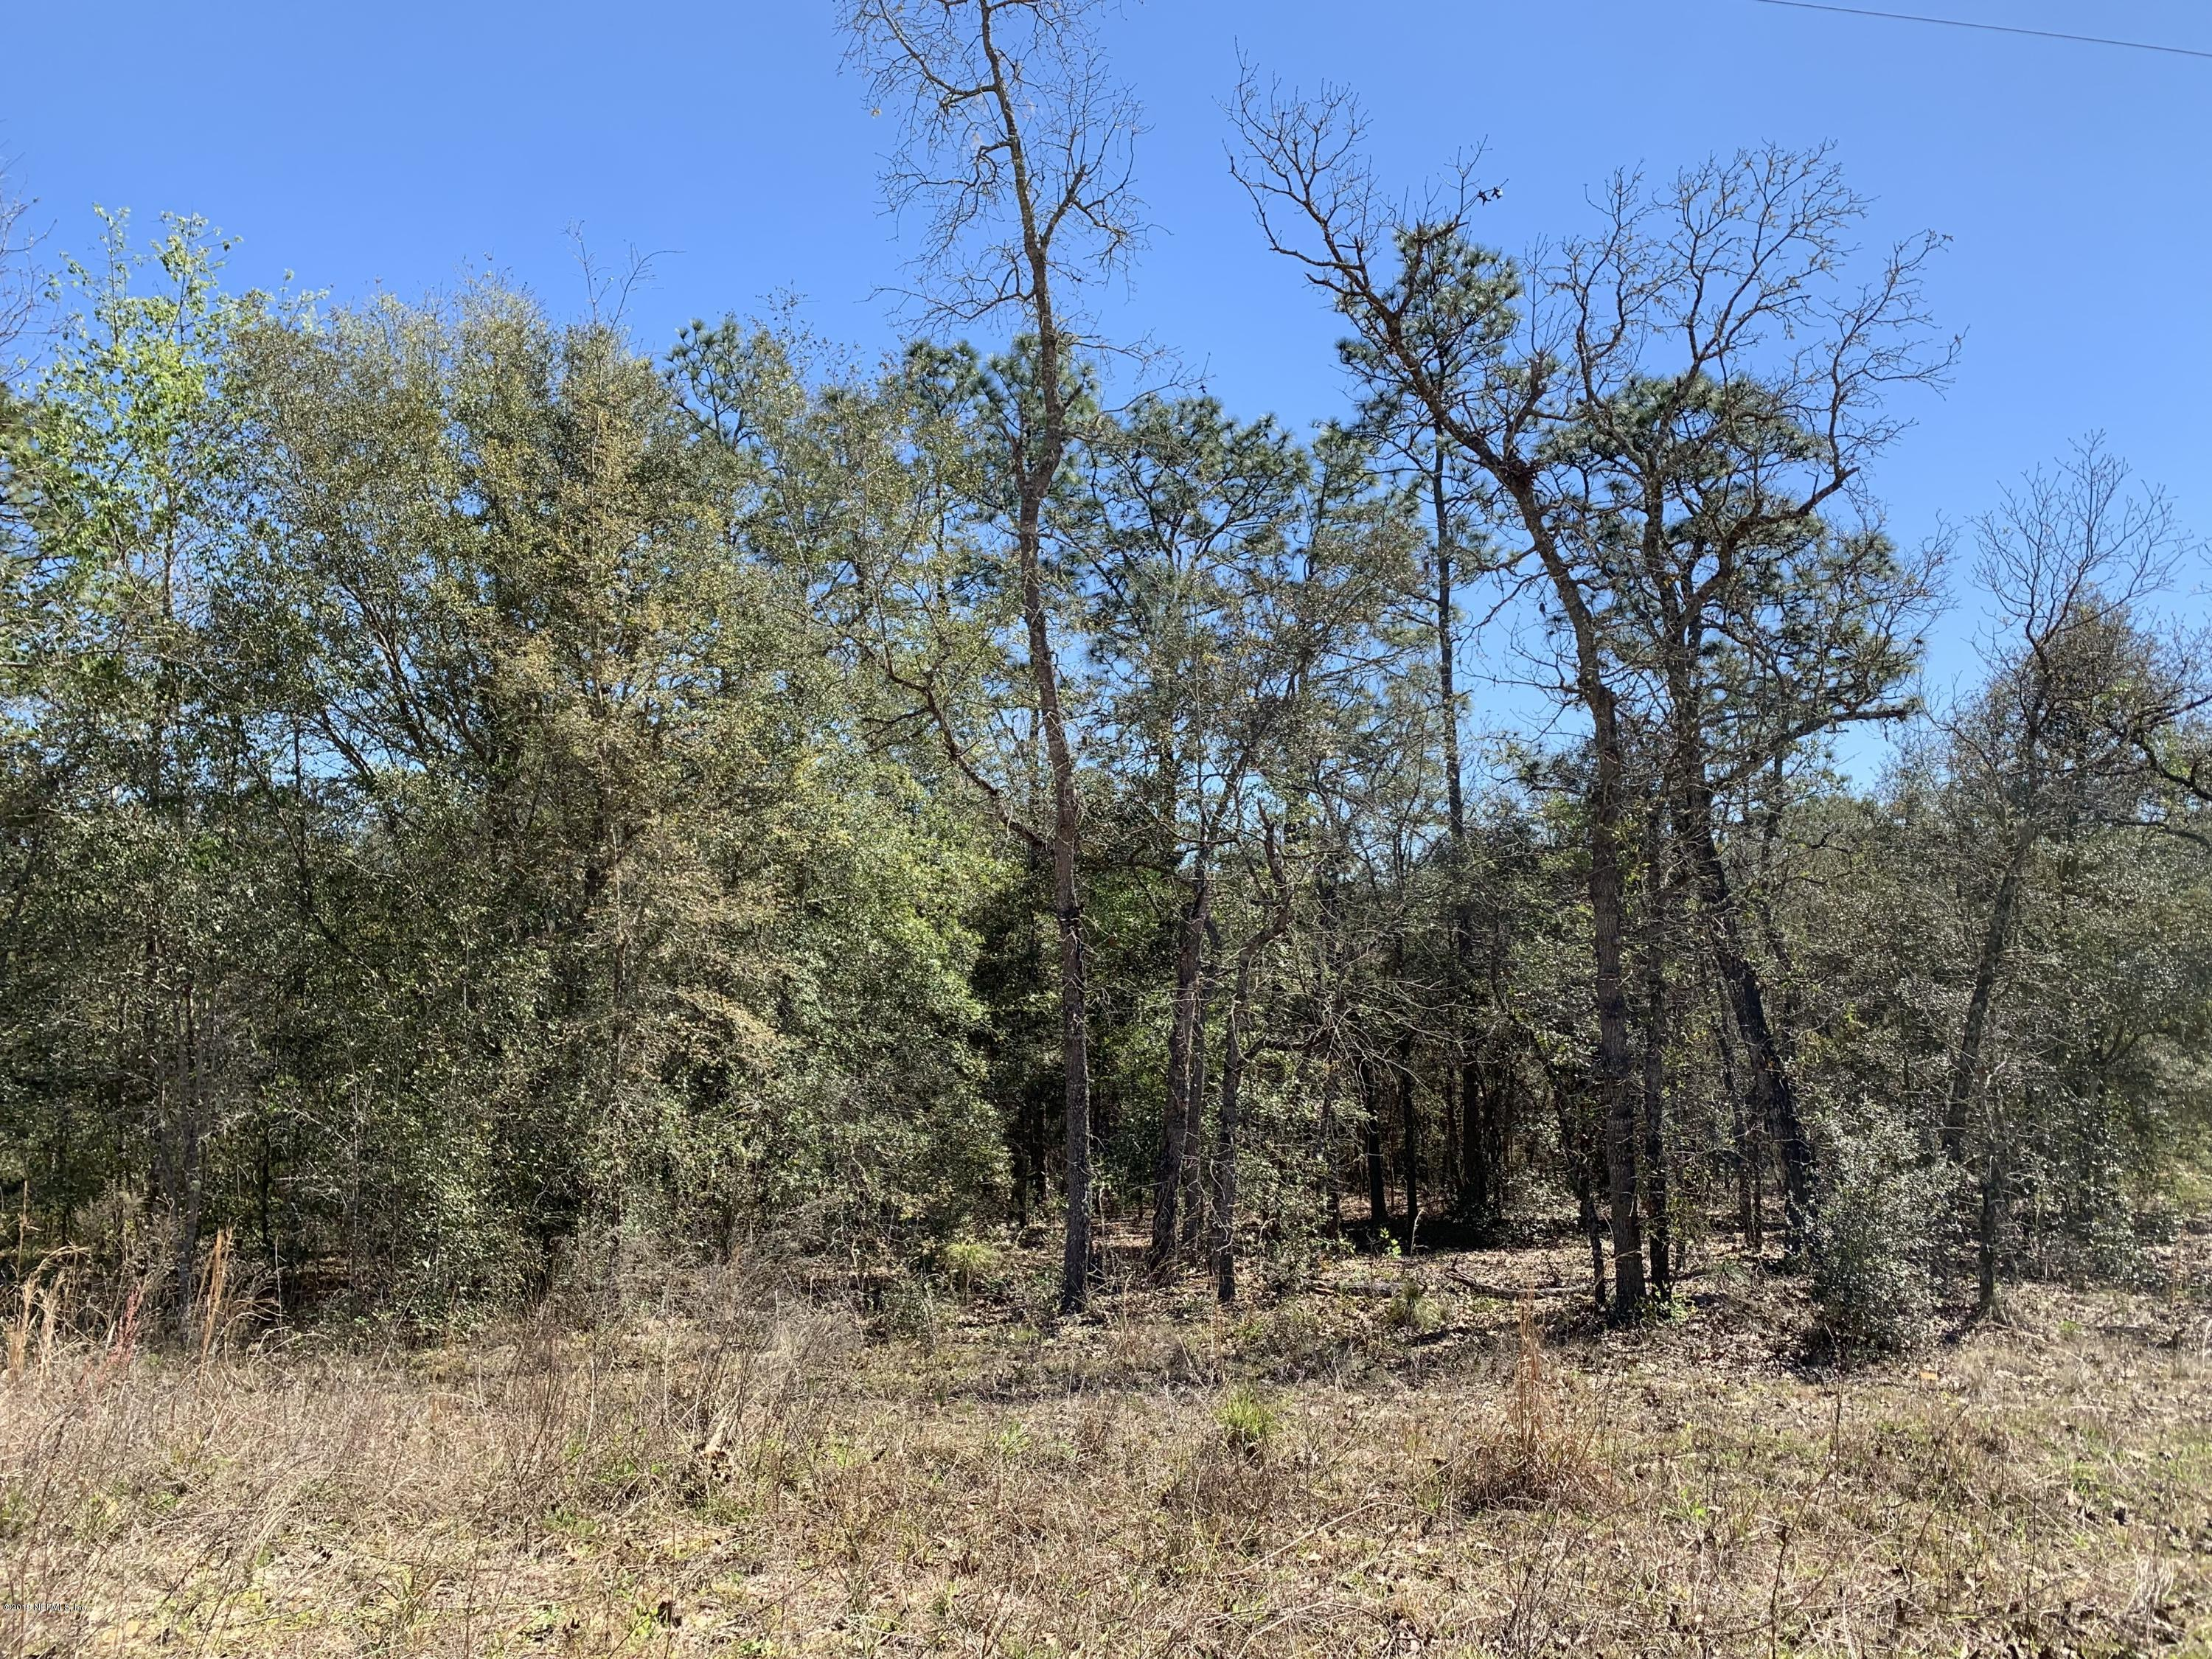 00 STATE ROAD 20, INTERLACHEN, FLORIDA 32148, ,Vacant land,For sale,STATE ROAD 20,1013403